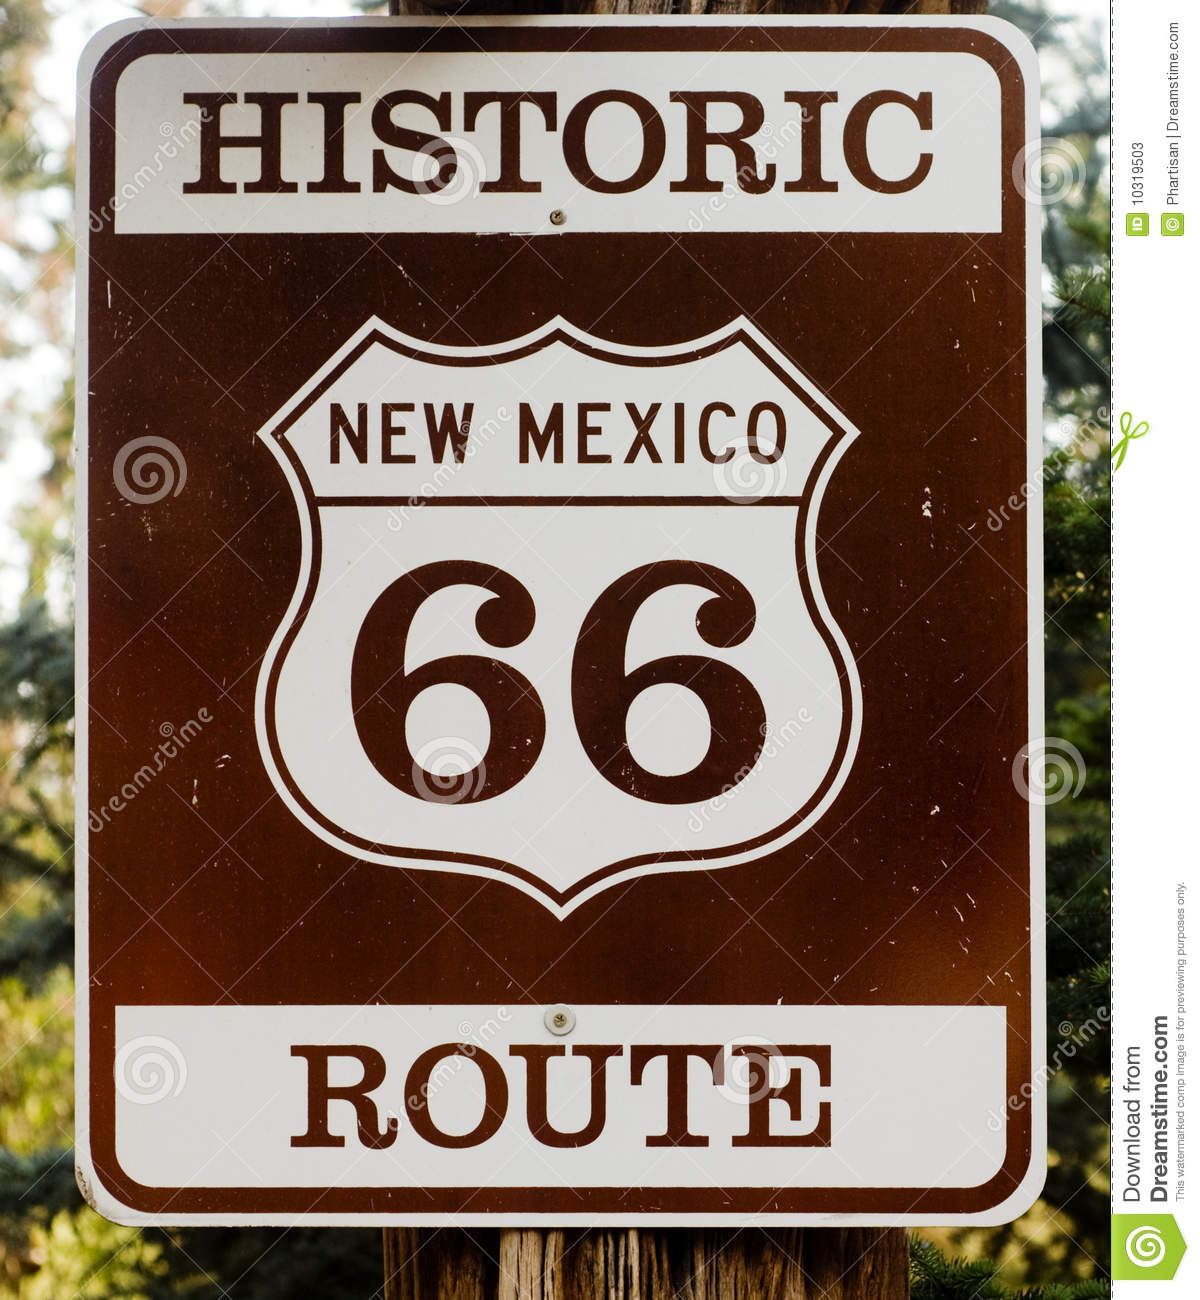 Historische Route 66 in de V.S.